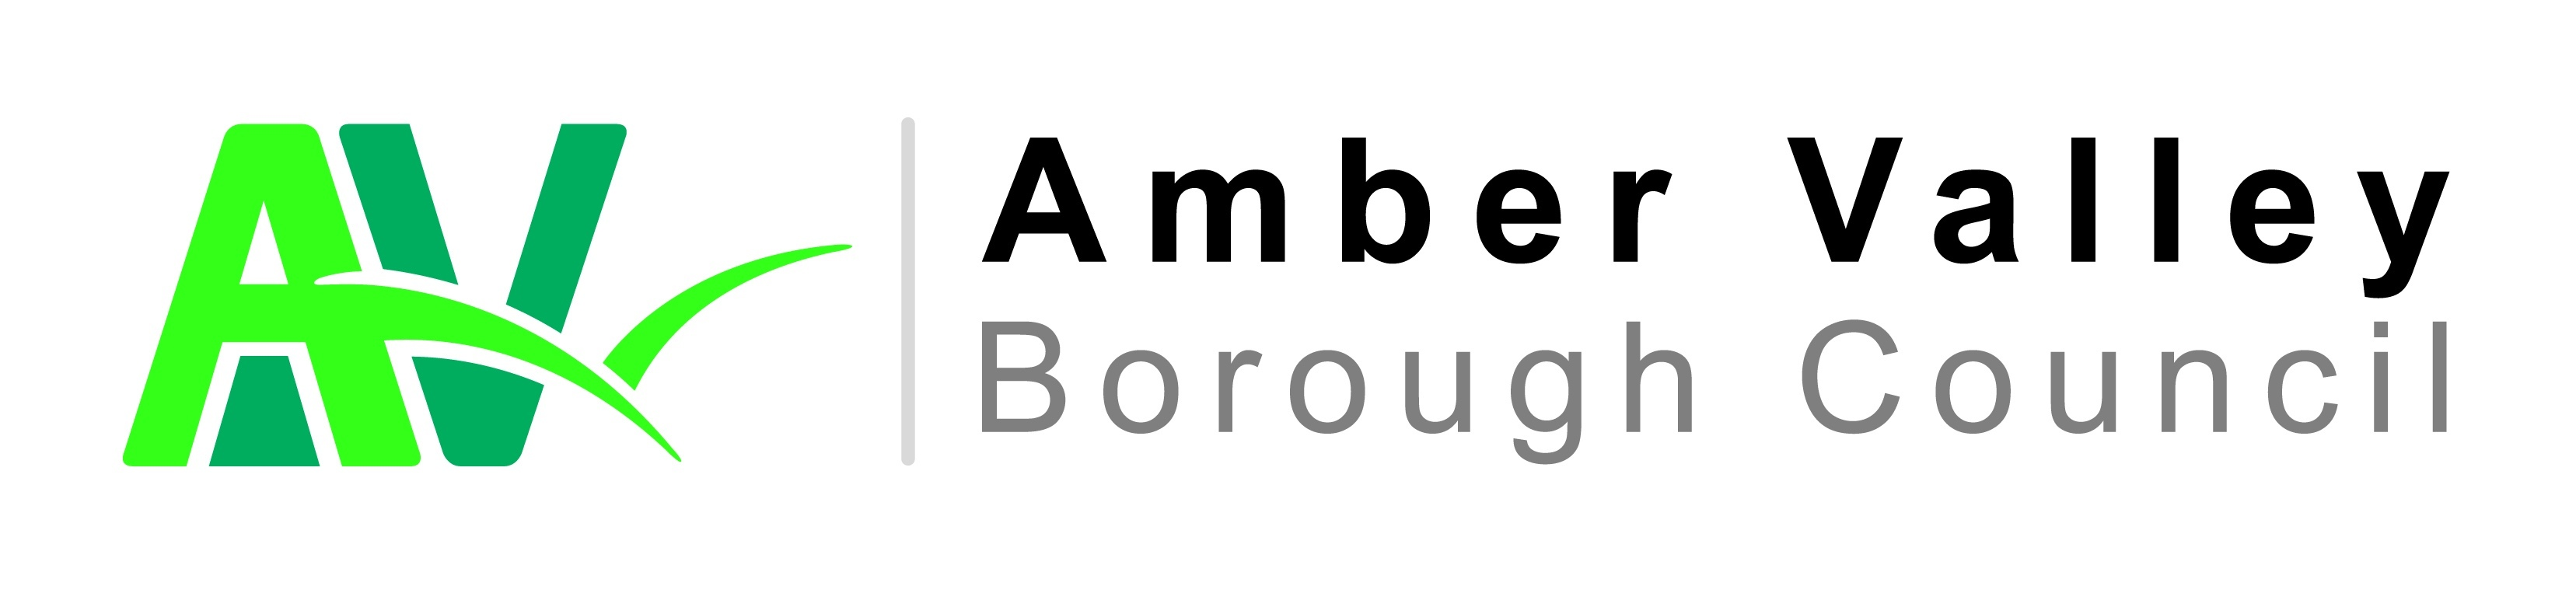 Community engagement - Amber Valley Borough Council